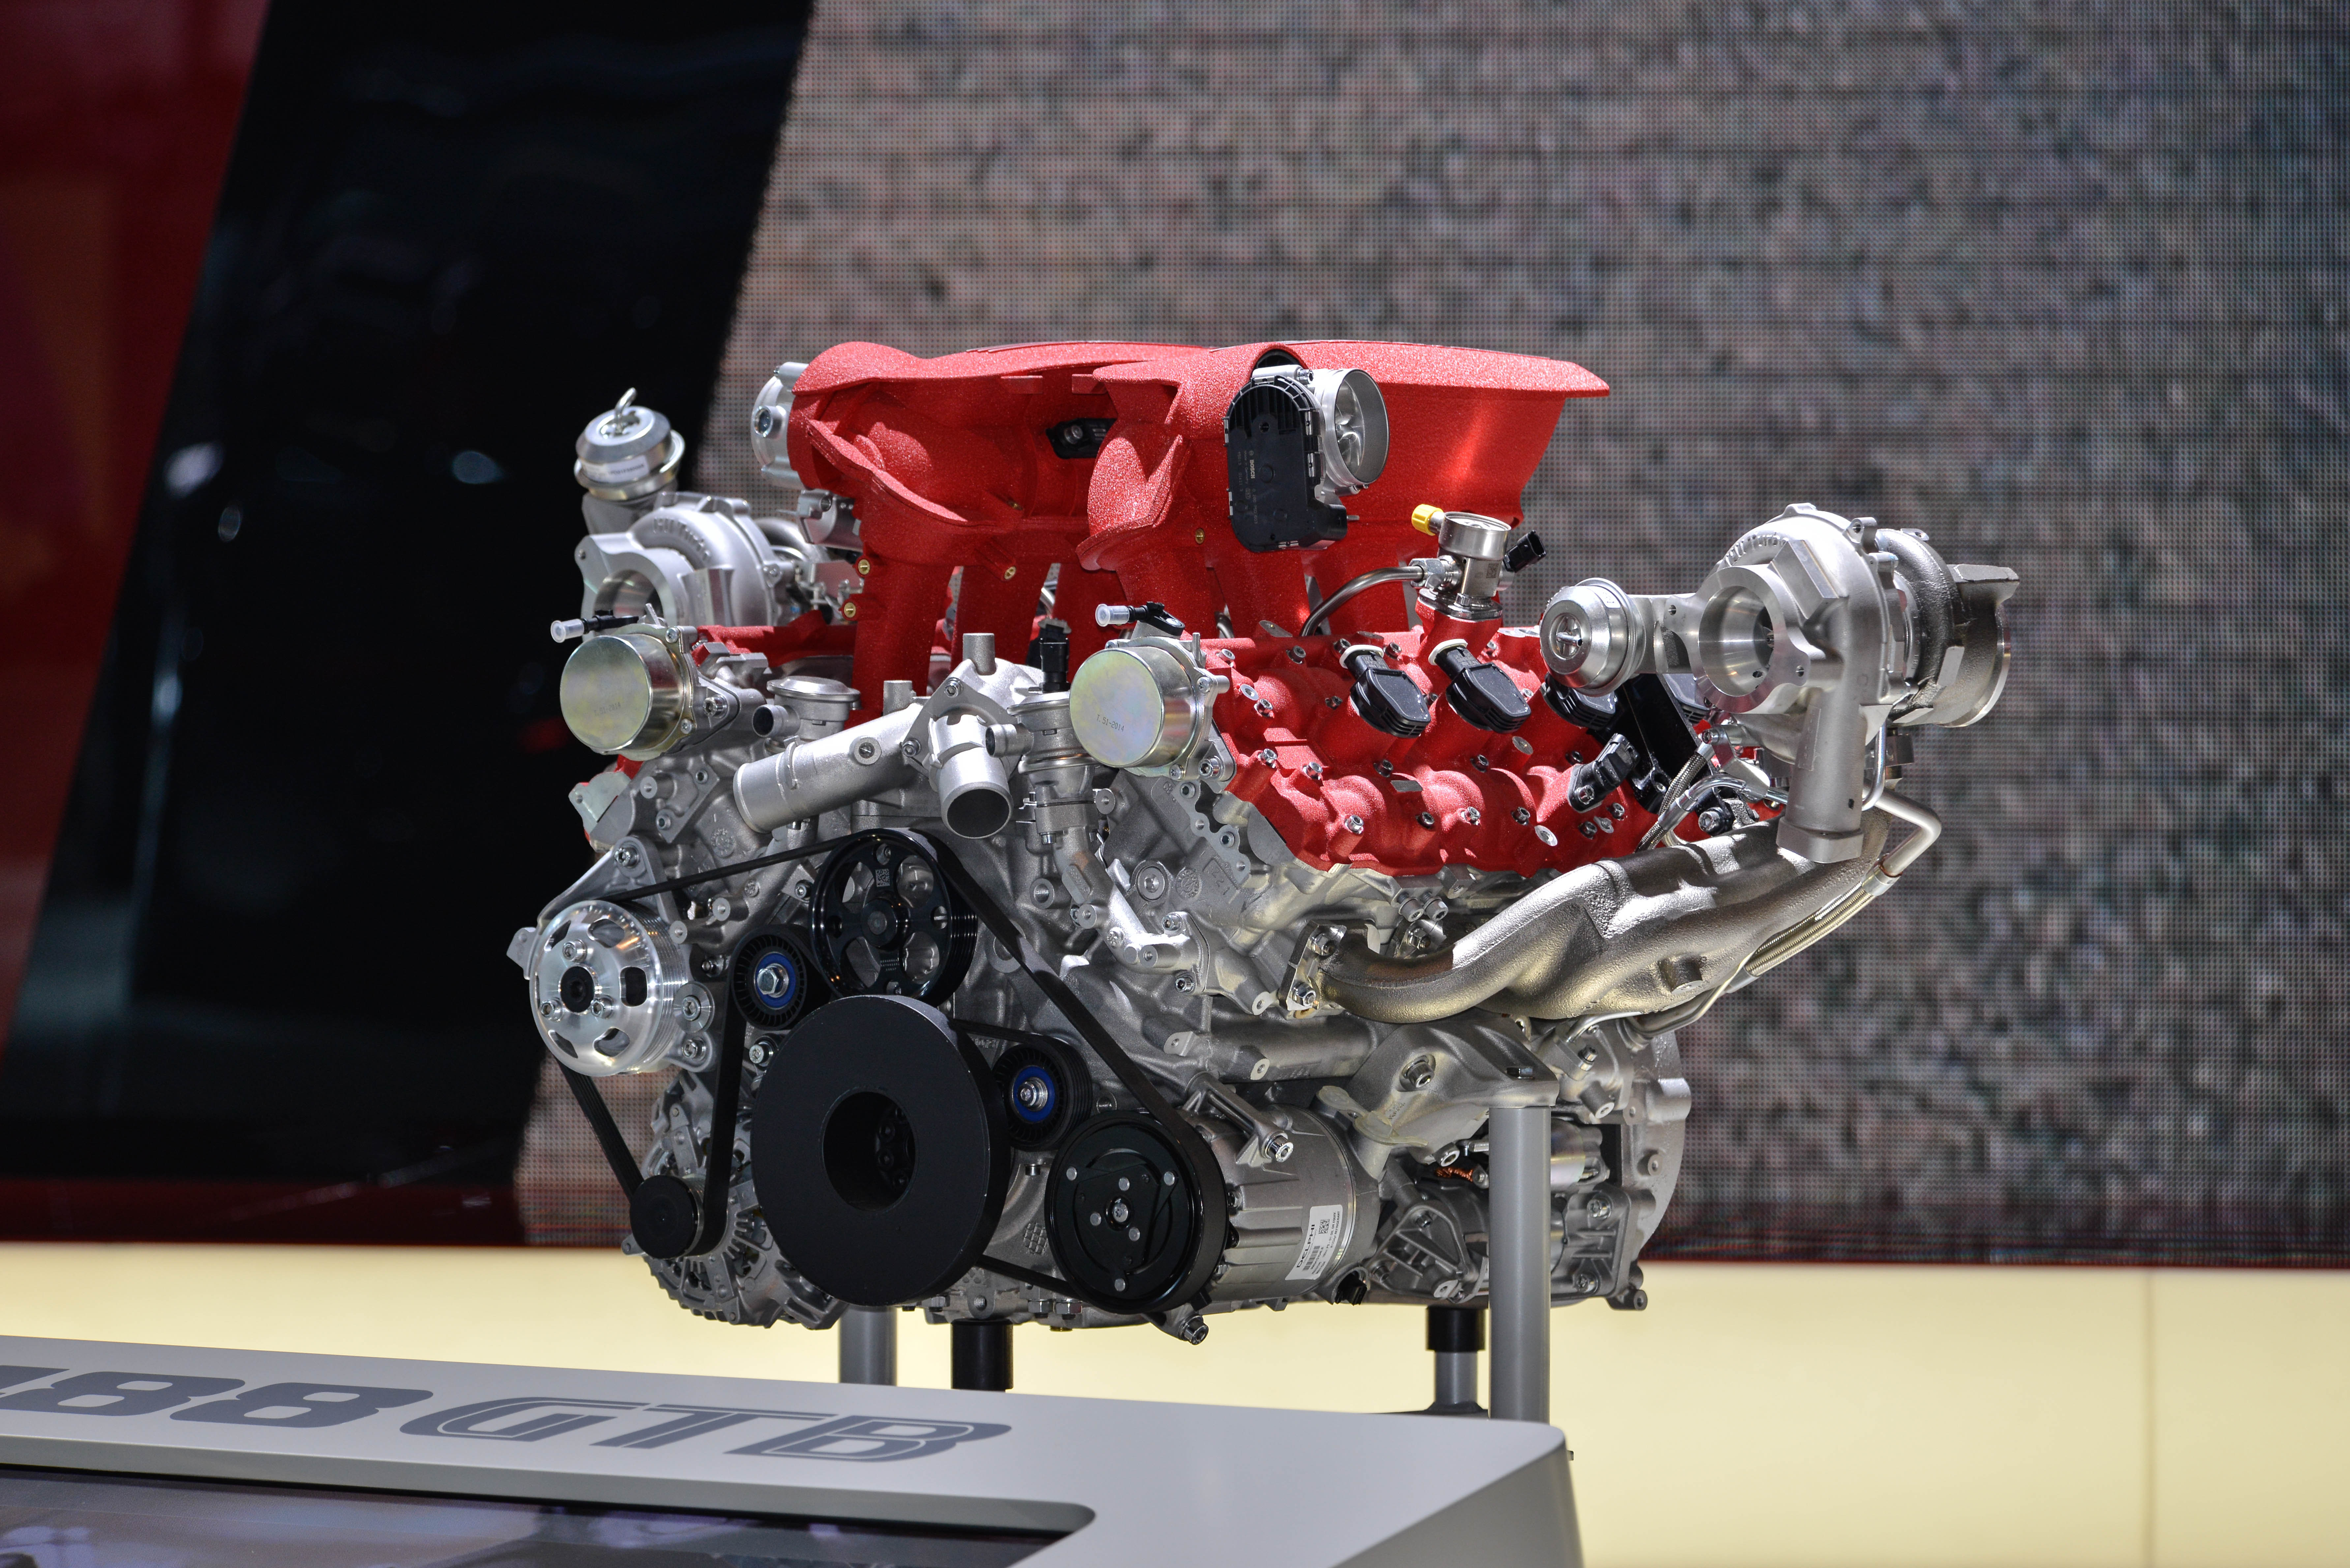 Ferrari F154 engine , Wikipedia